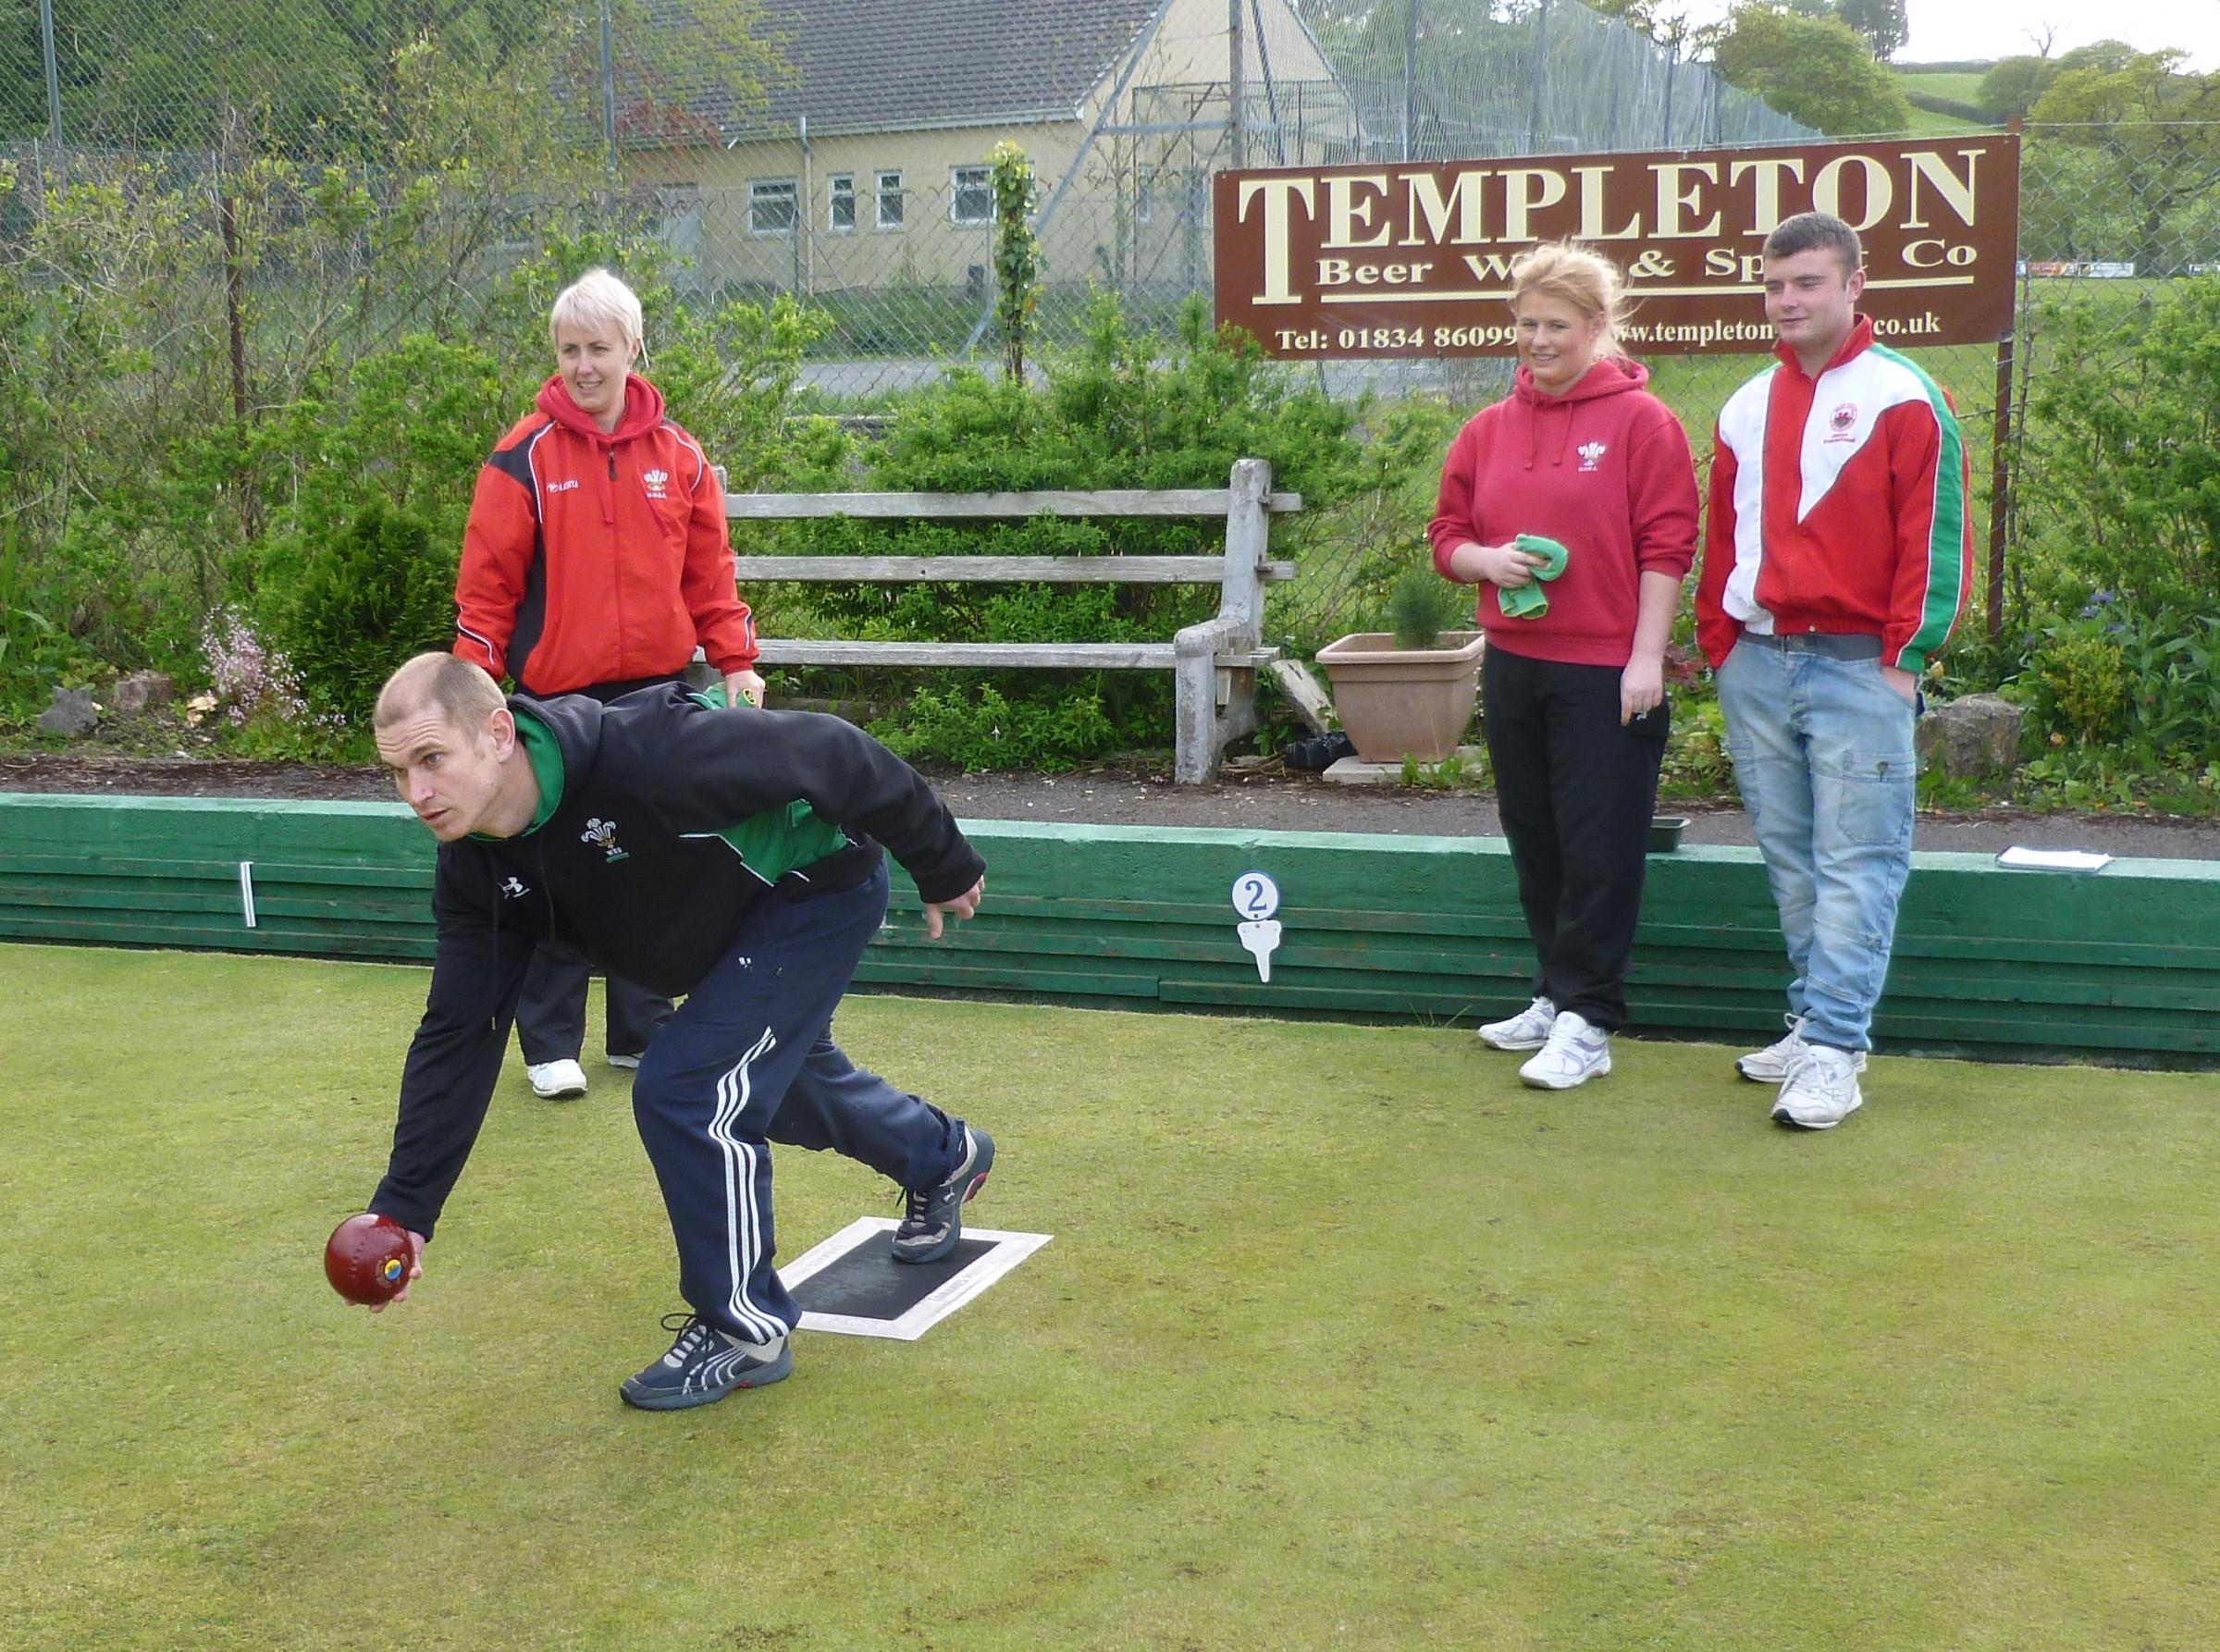 Bowled over in Saundersfoot